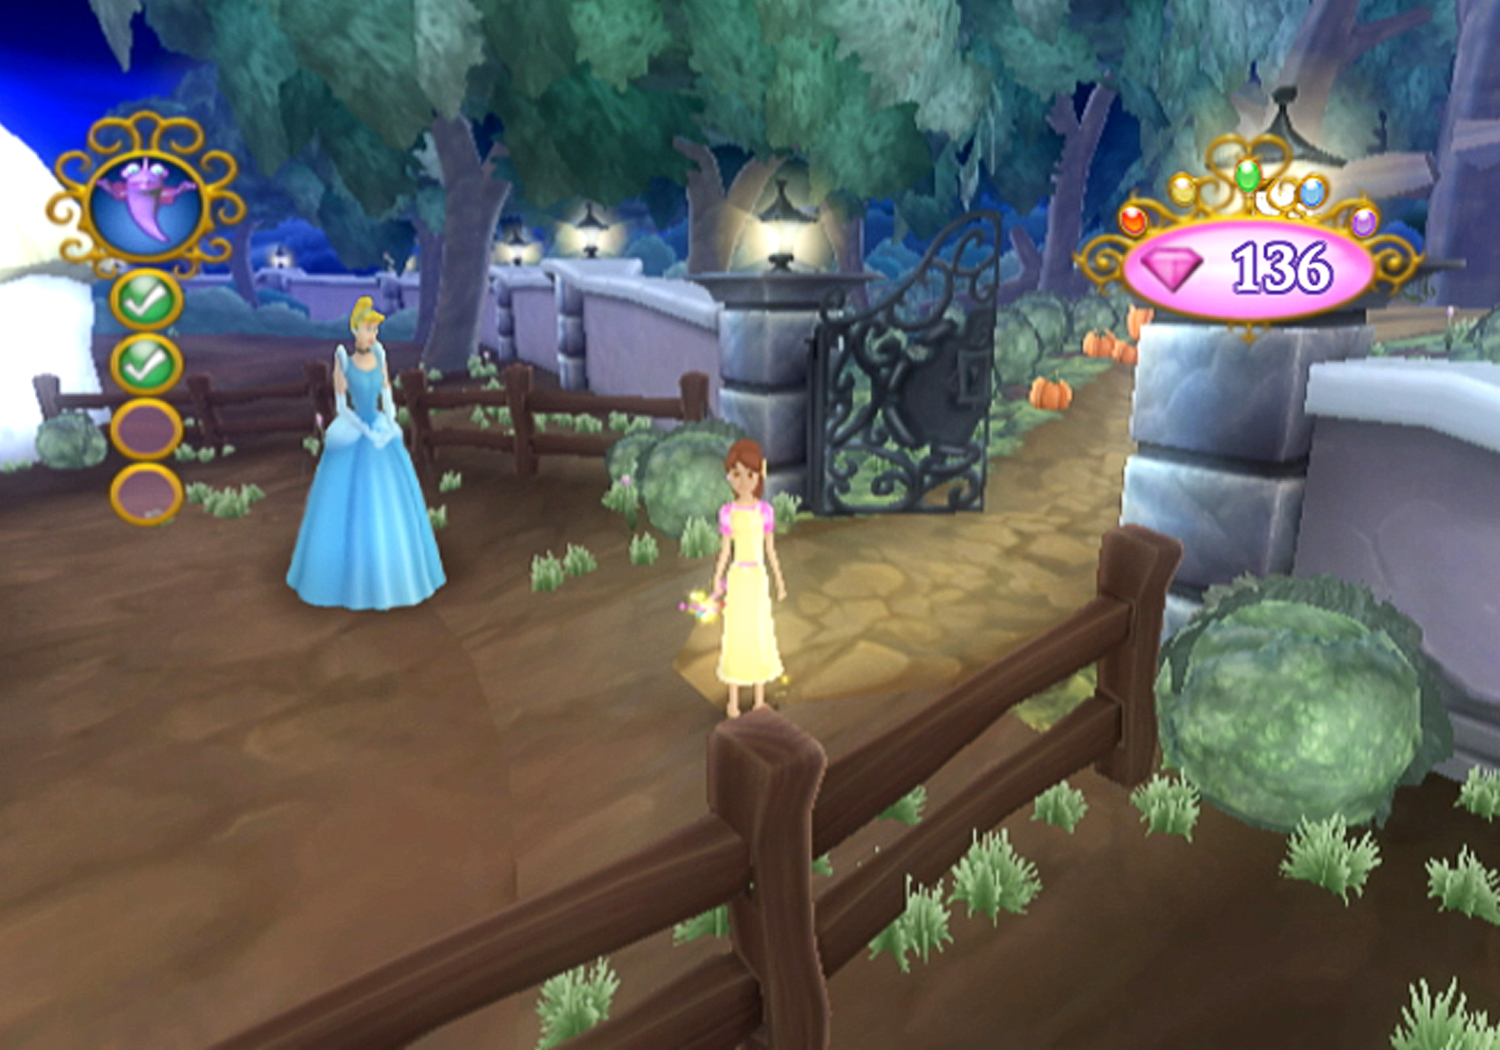 Download cinderella games for girls 1. 2. 1 apk for pc free.